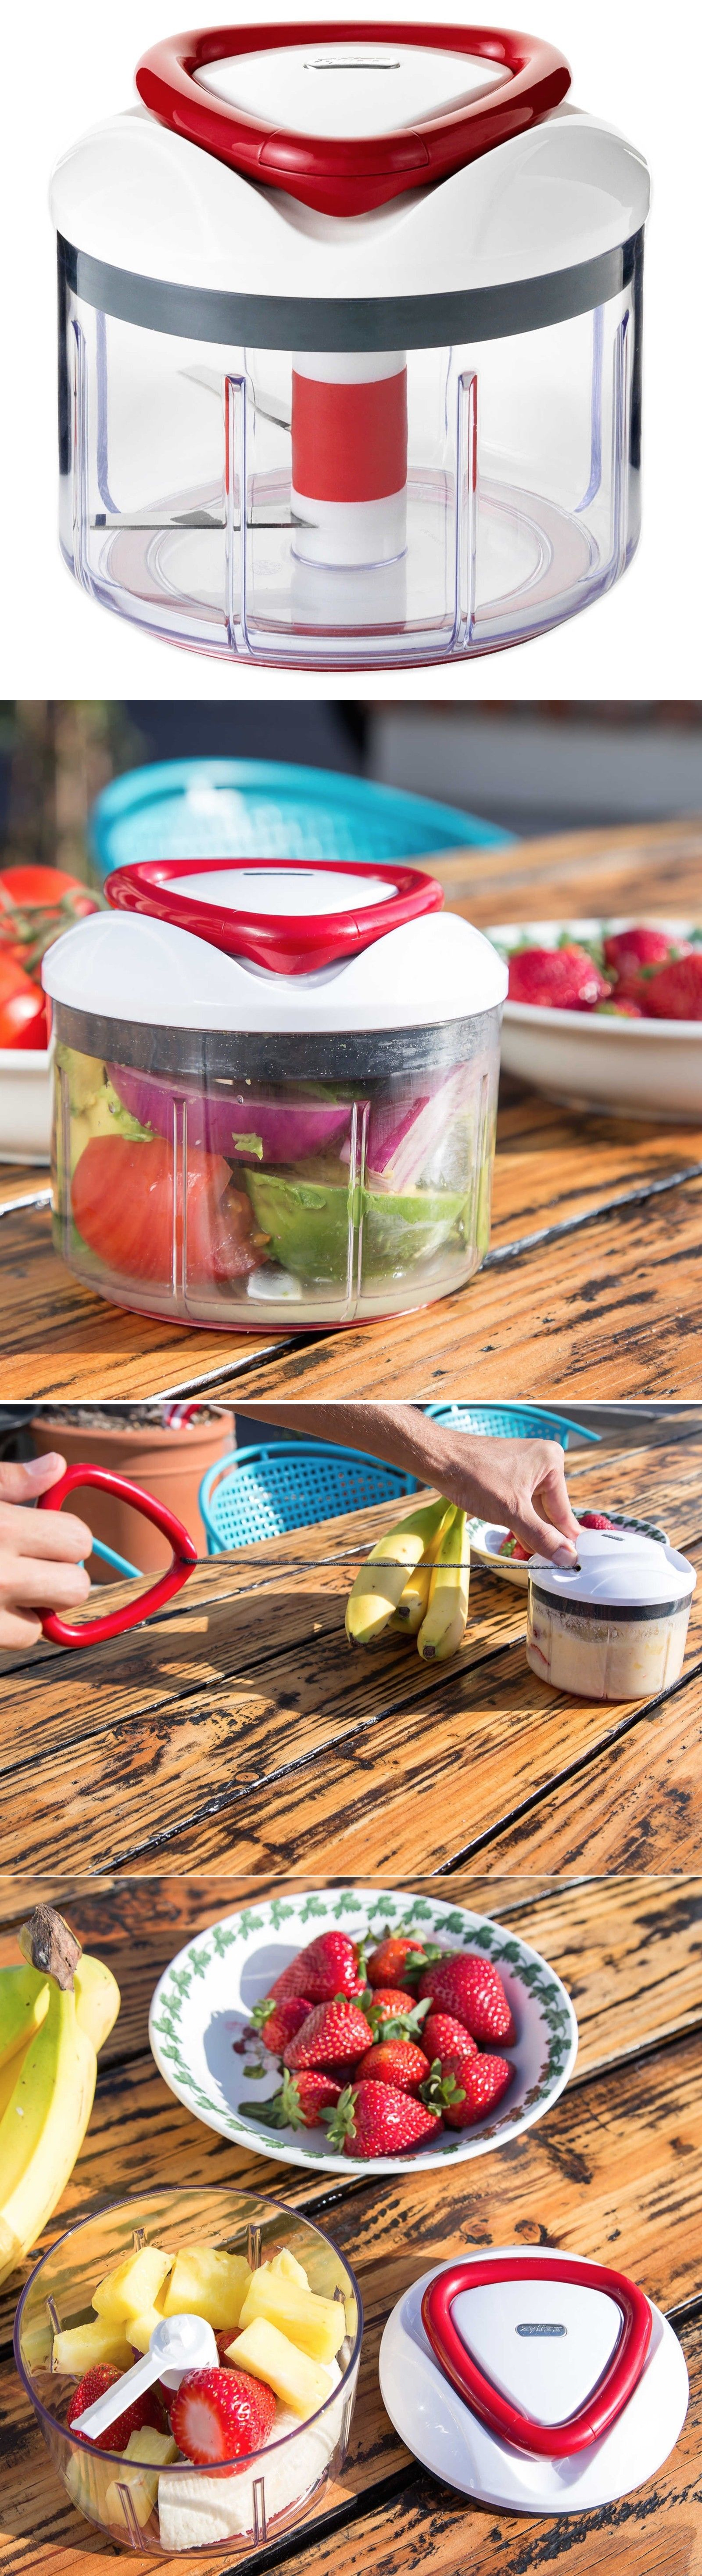 Zyliss easy pull food processor recipes easy cooks recipes zyliss easy pull food processor recipes forumfinder Image collections